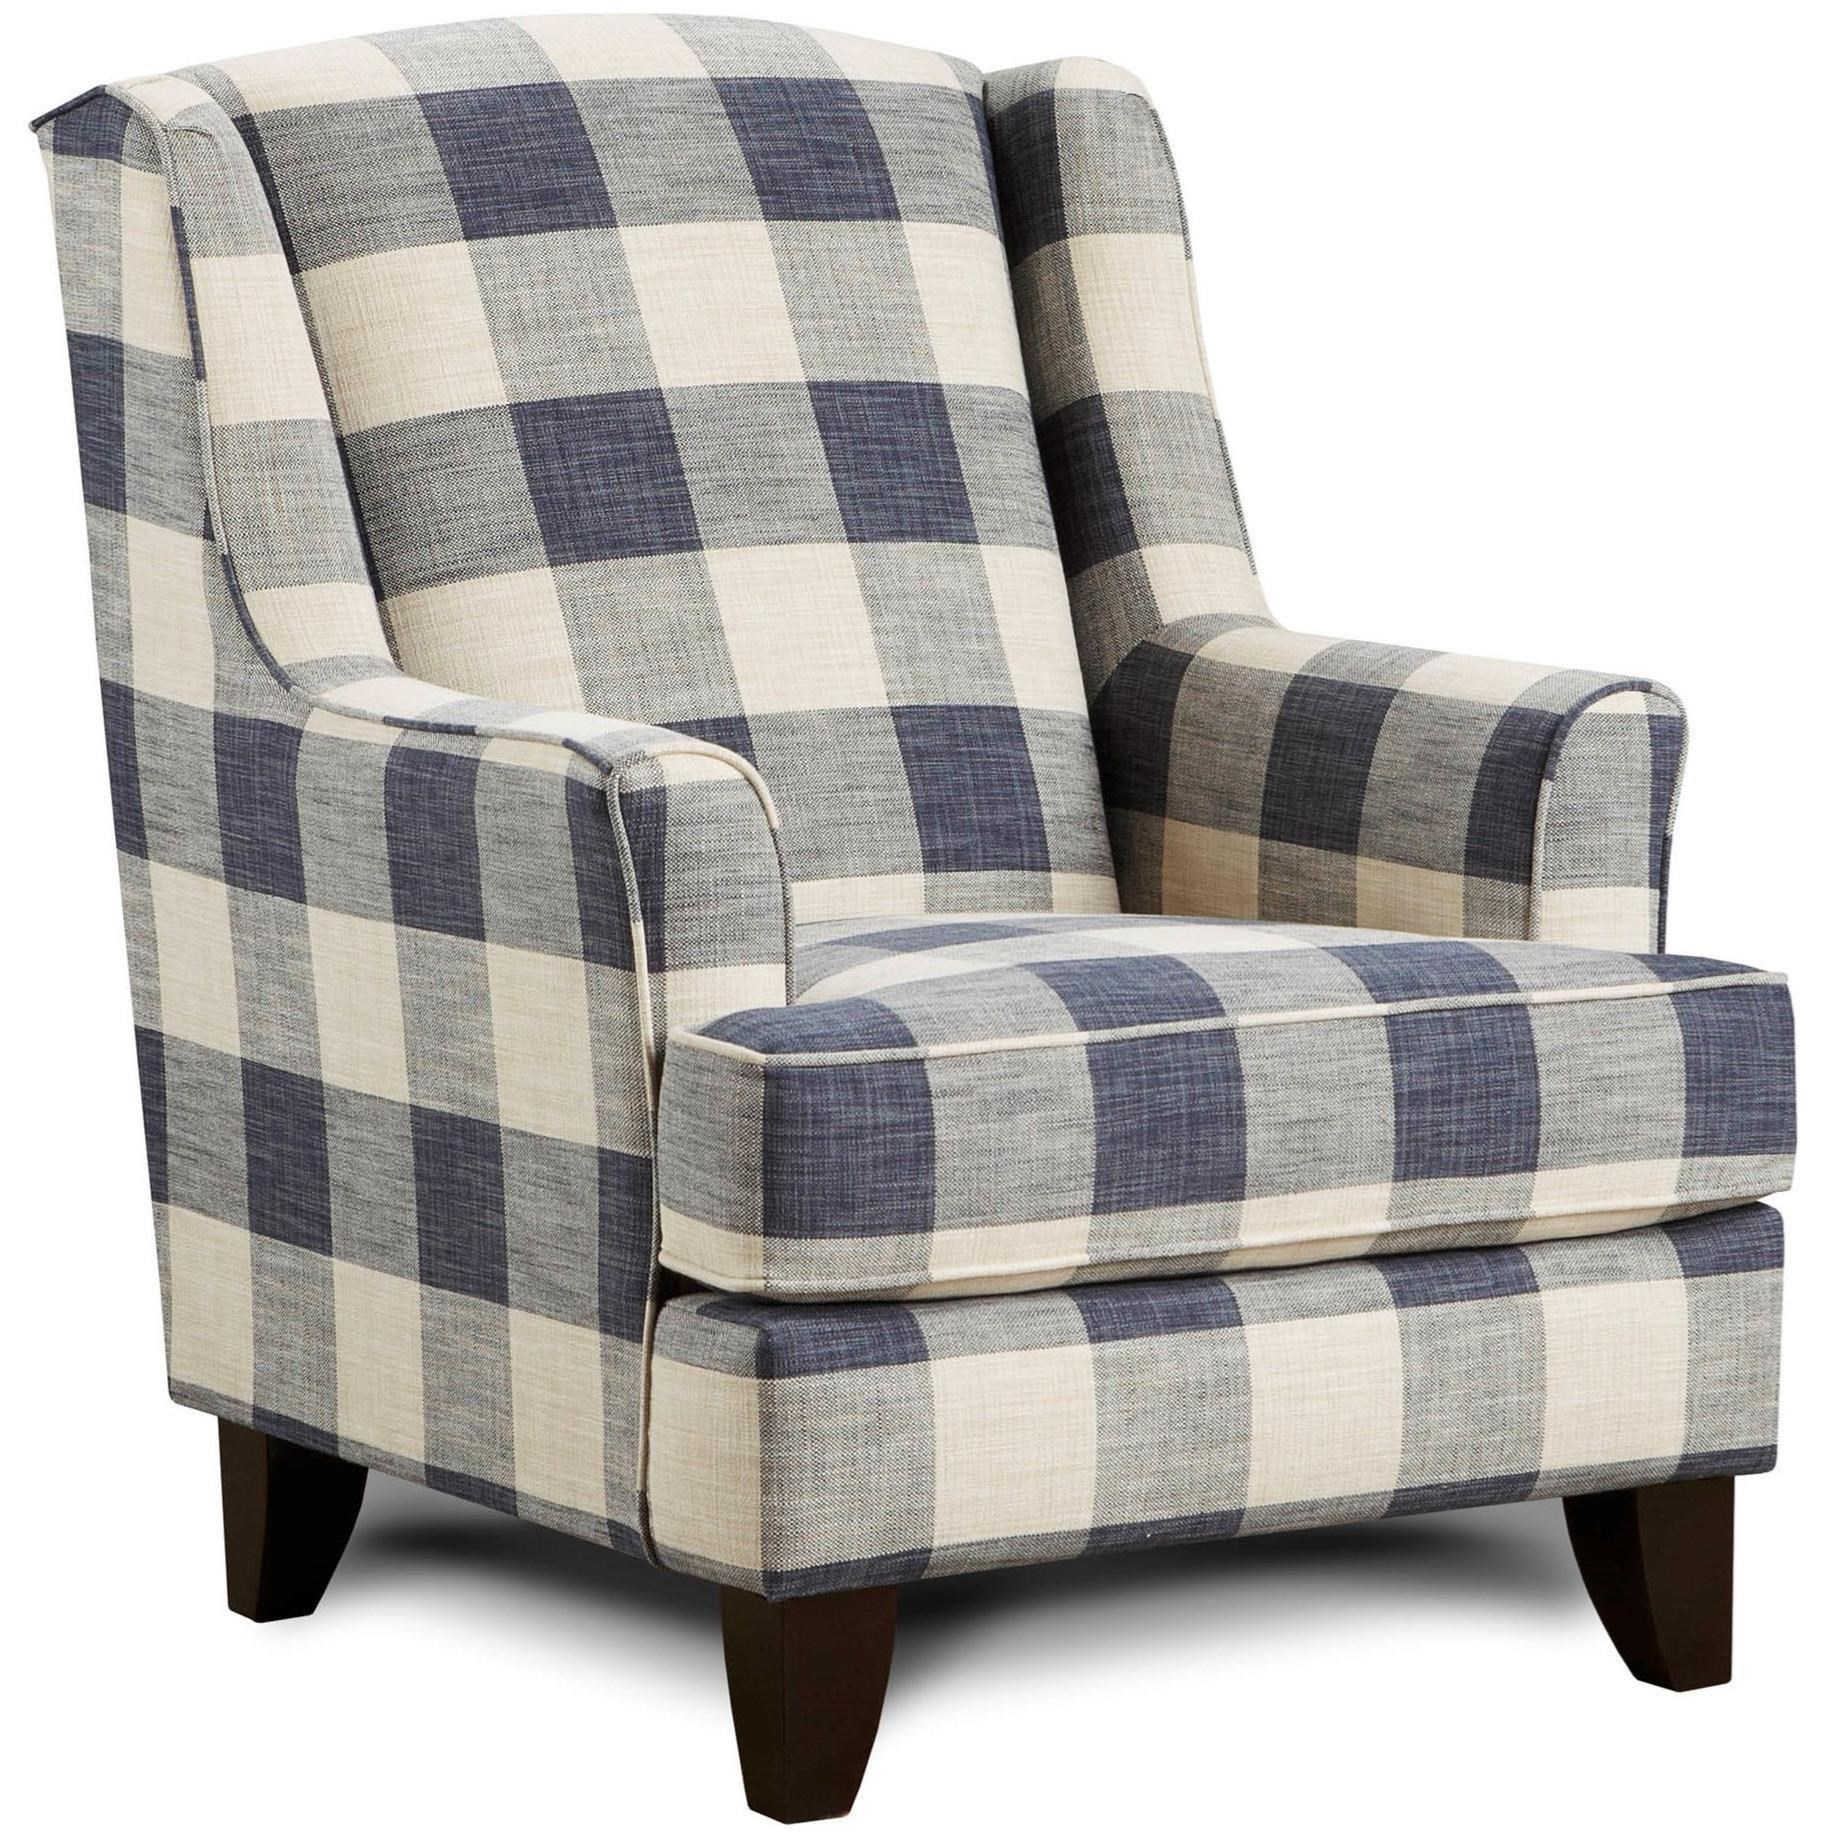 Josephine Accent Chair by Fusion Furniture at Crowley Furniture & Mattress